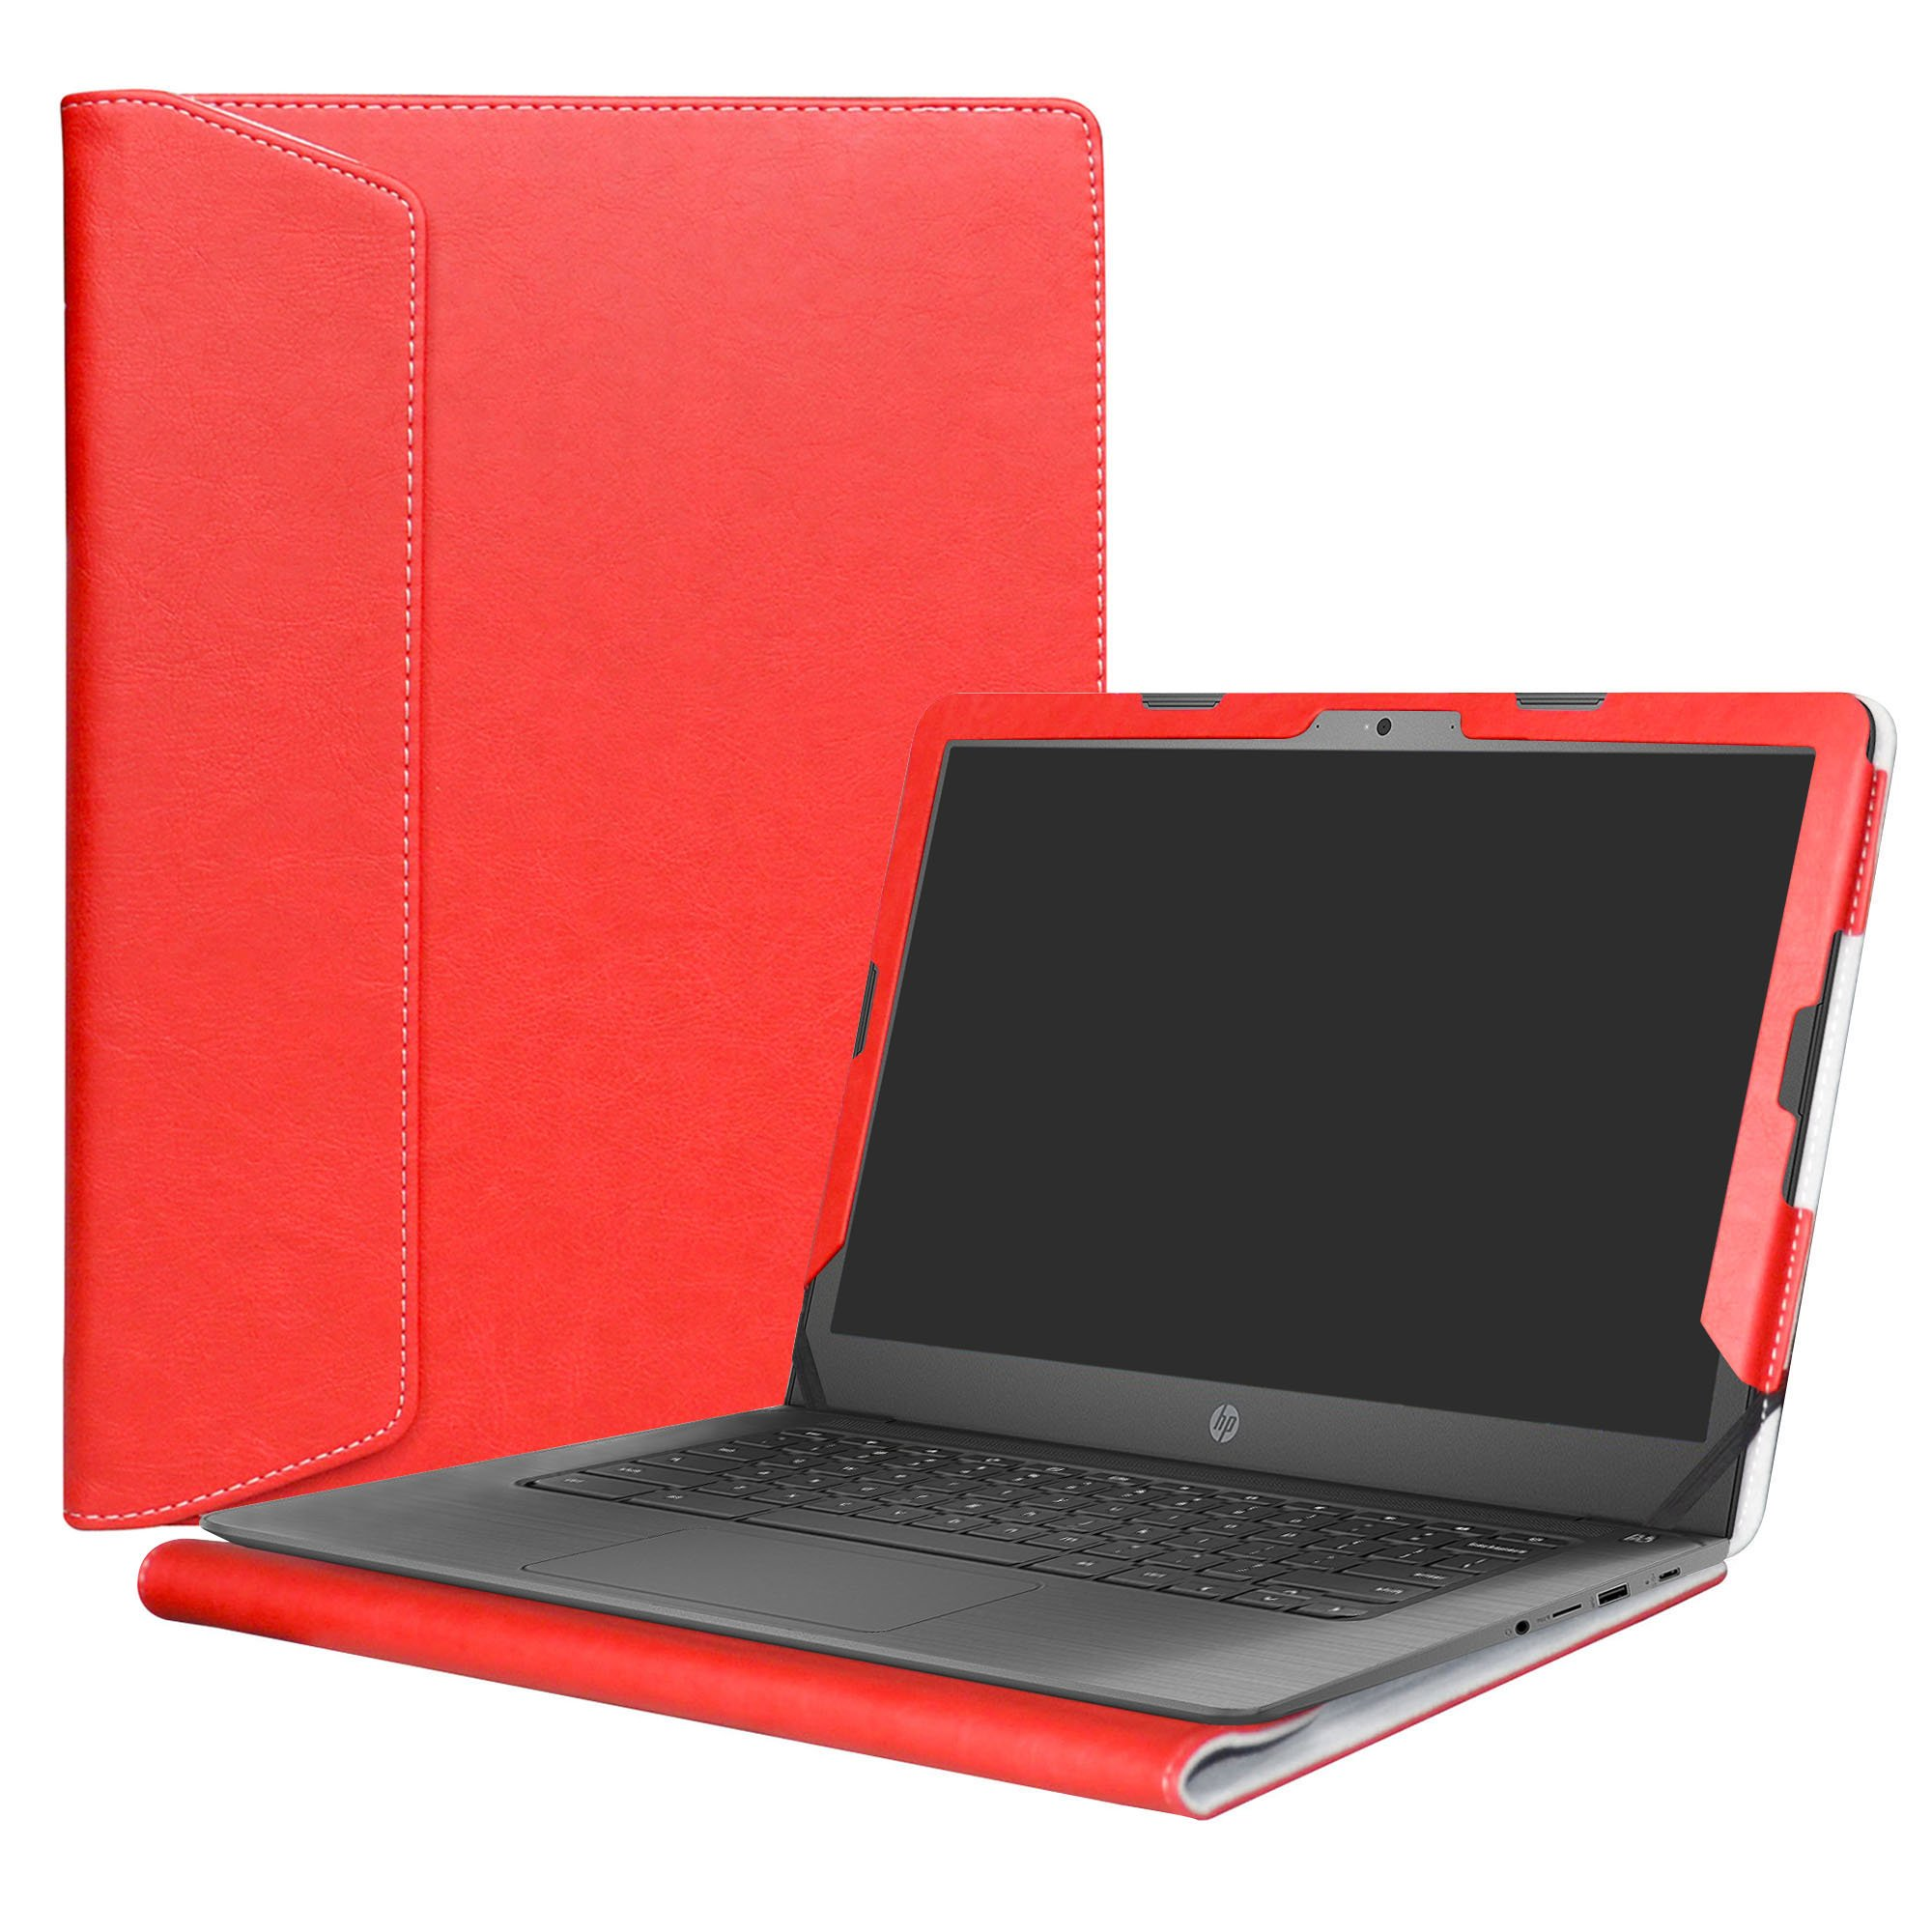 Alapmk Protective Case Cover For 14'' HP Notebook 14-bsXXX (Such as 14-bs153od)/14-bwXXX (Such as 14-bw010nr)/HP 240 G6/HP 245 G6/HP 246 G6 Laptop(Not fit 14-anXXX 14-amXXX 14-cmXXX Series),Red